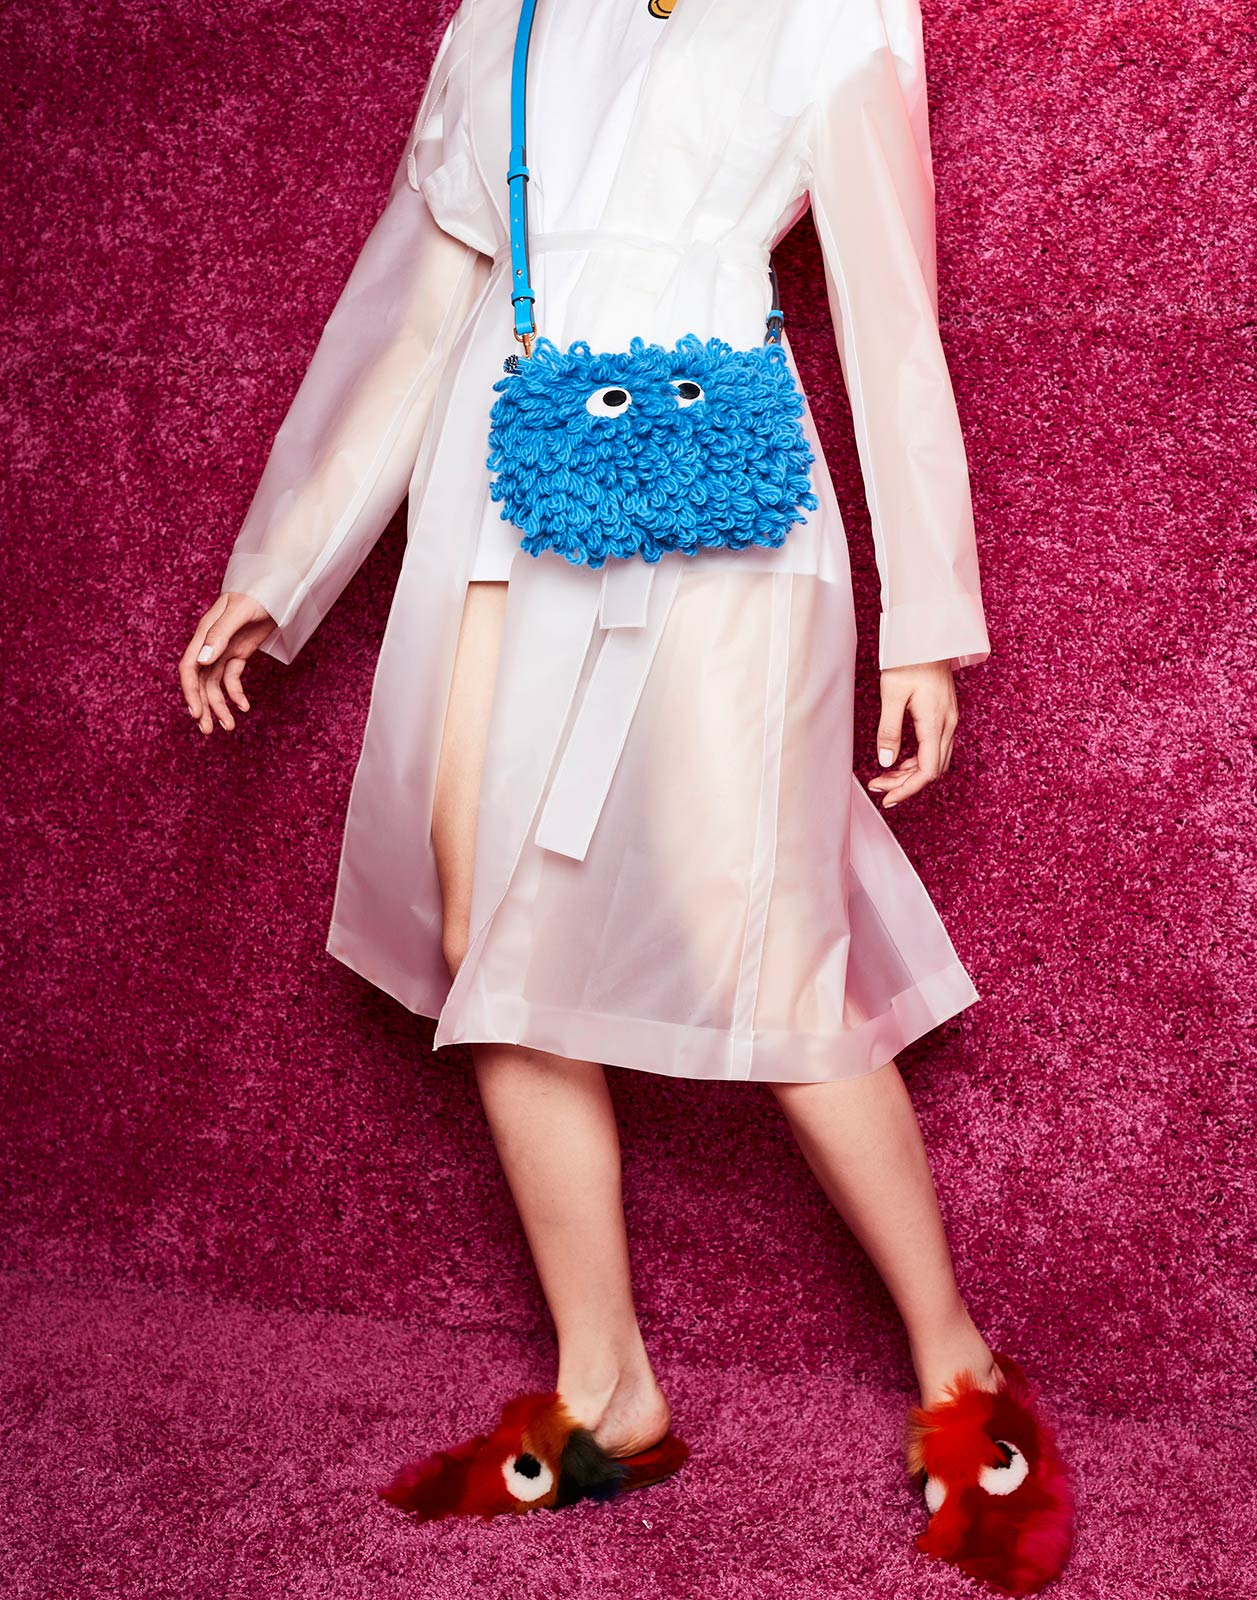 17_09_19_ANYAHINDMARCH_SS18_D1_LOOK_9_4700_low_ret_mid2